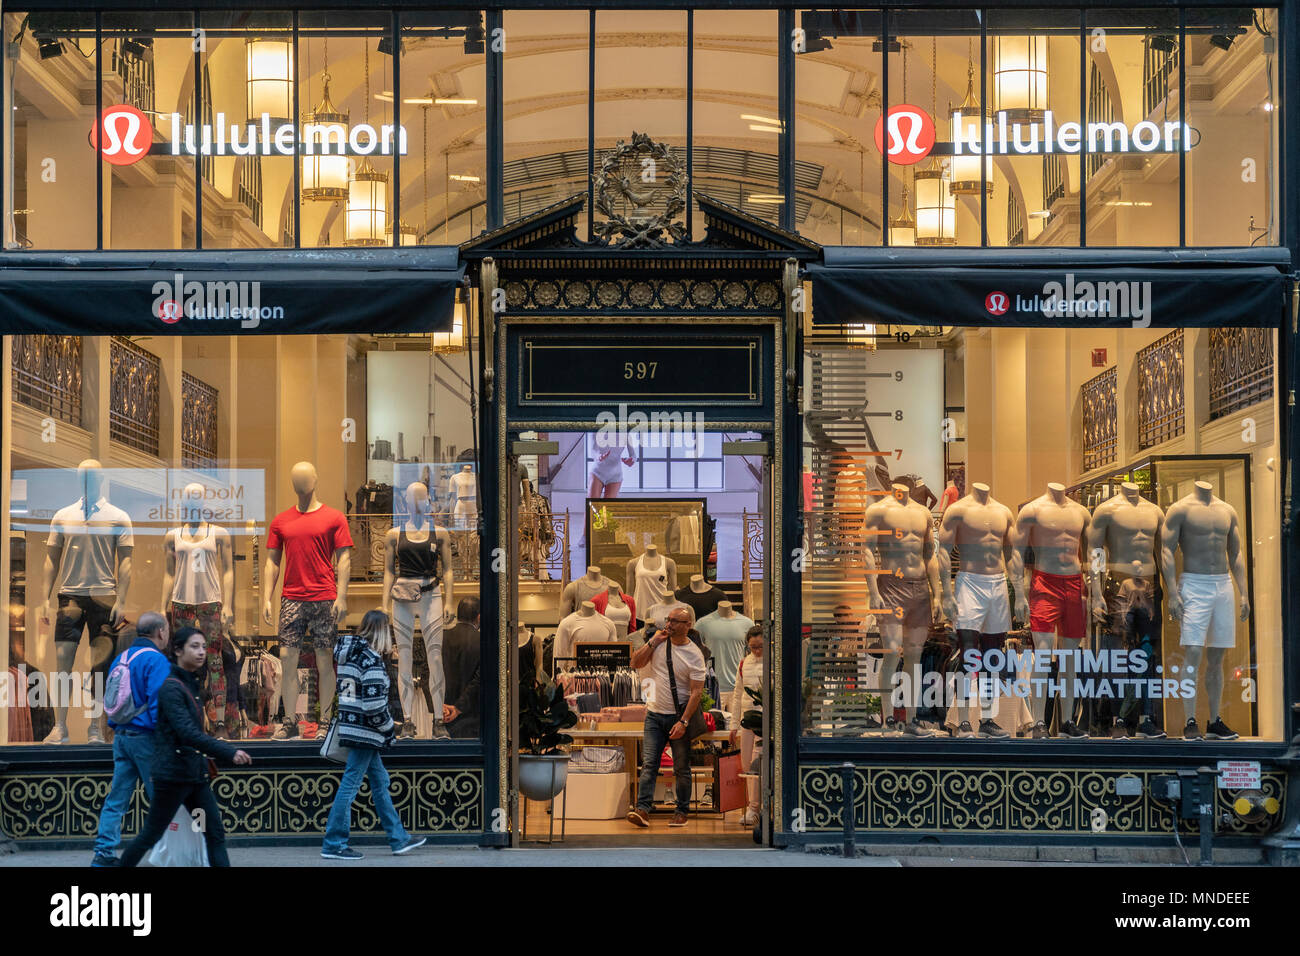 d9943b69abf The Lululemon Athletica store on Fifth Avenue in New York on Tuesday, May 8,